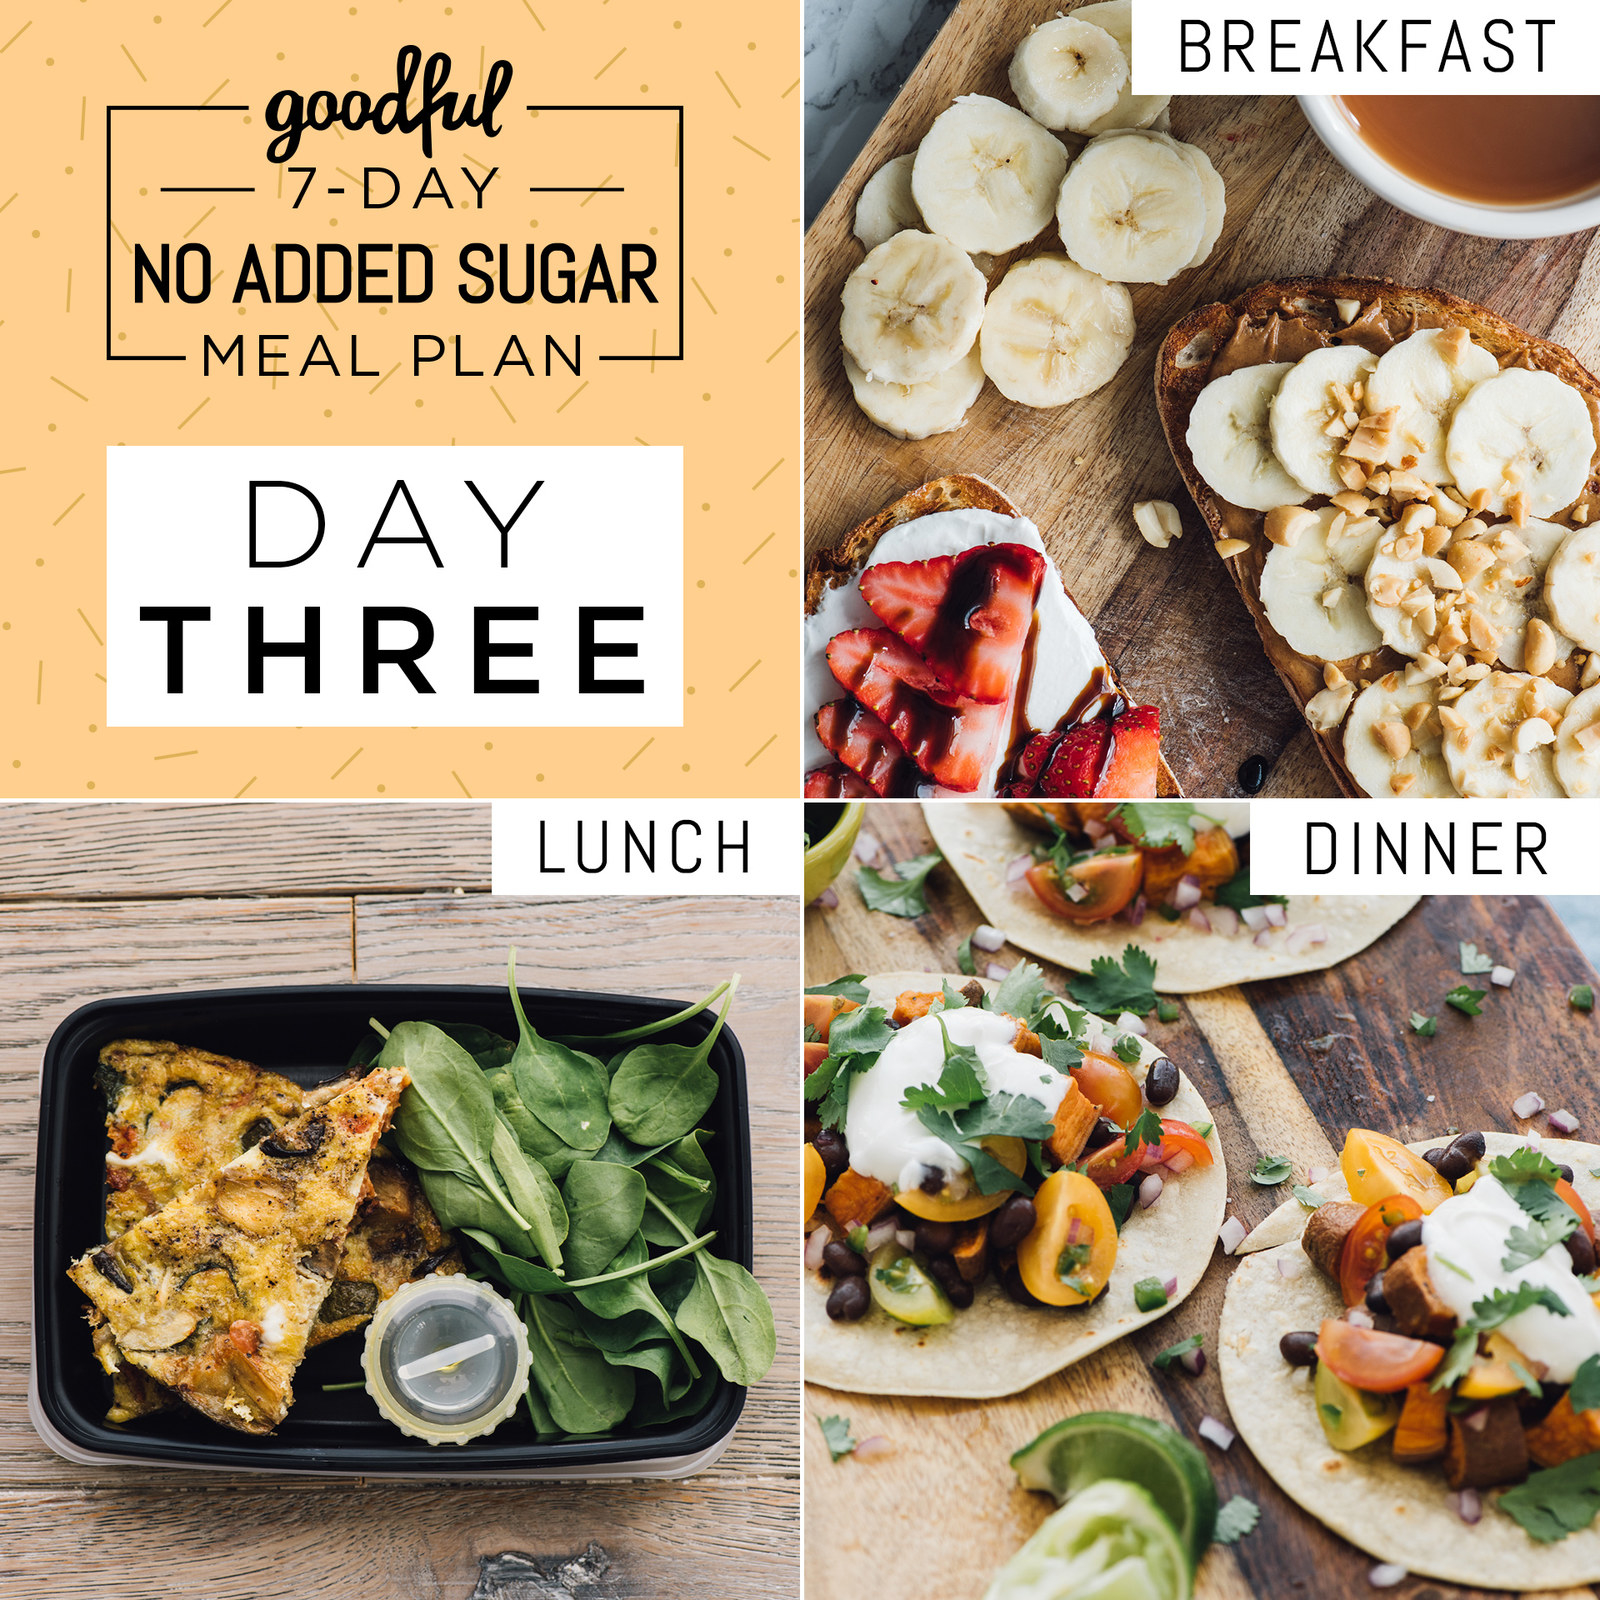 Here's A 7-Day No-Added-Sugar Meal Plan That's Actually Doable